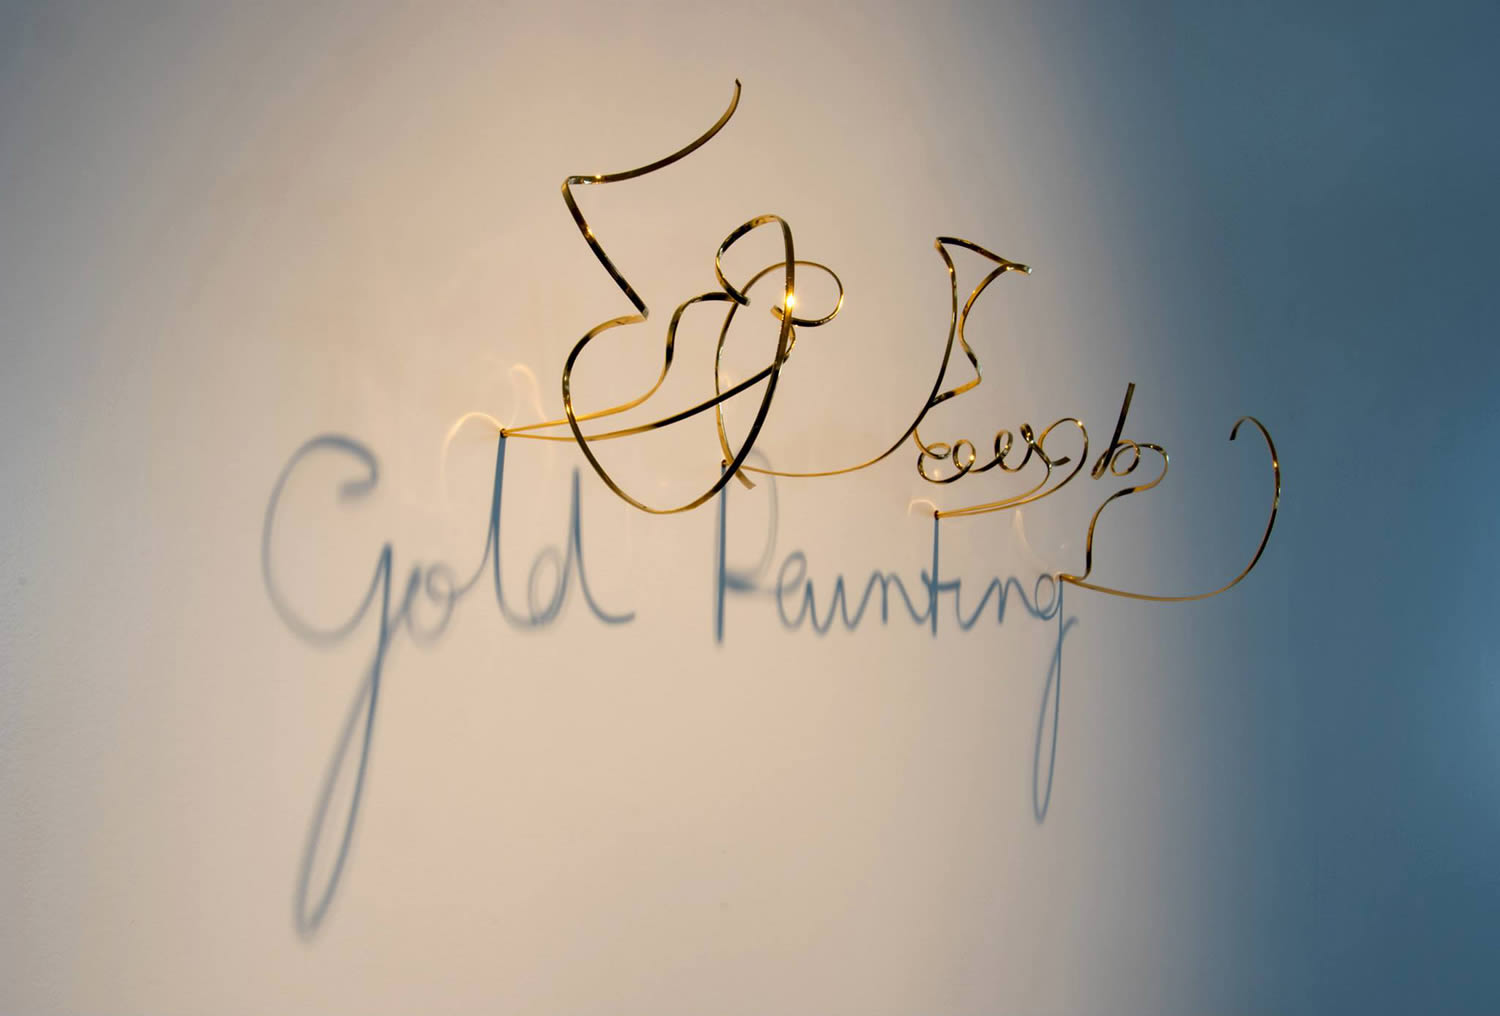 gold paintings, fred eerdekens